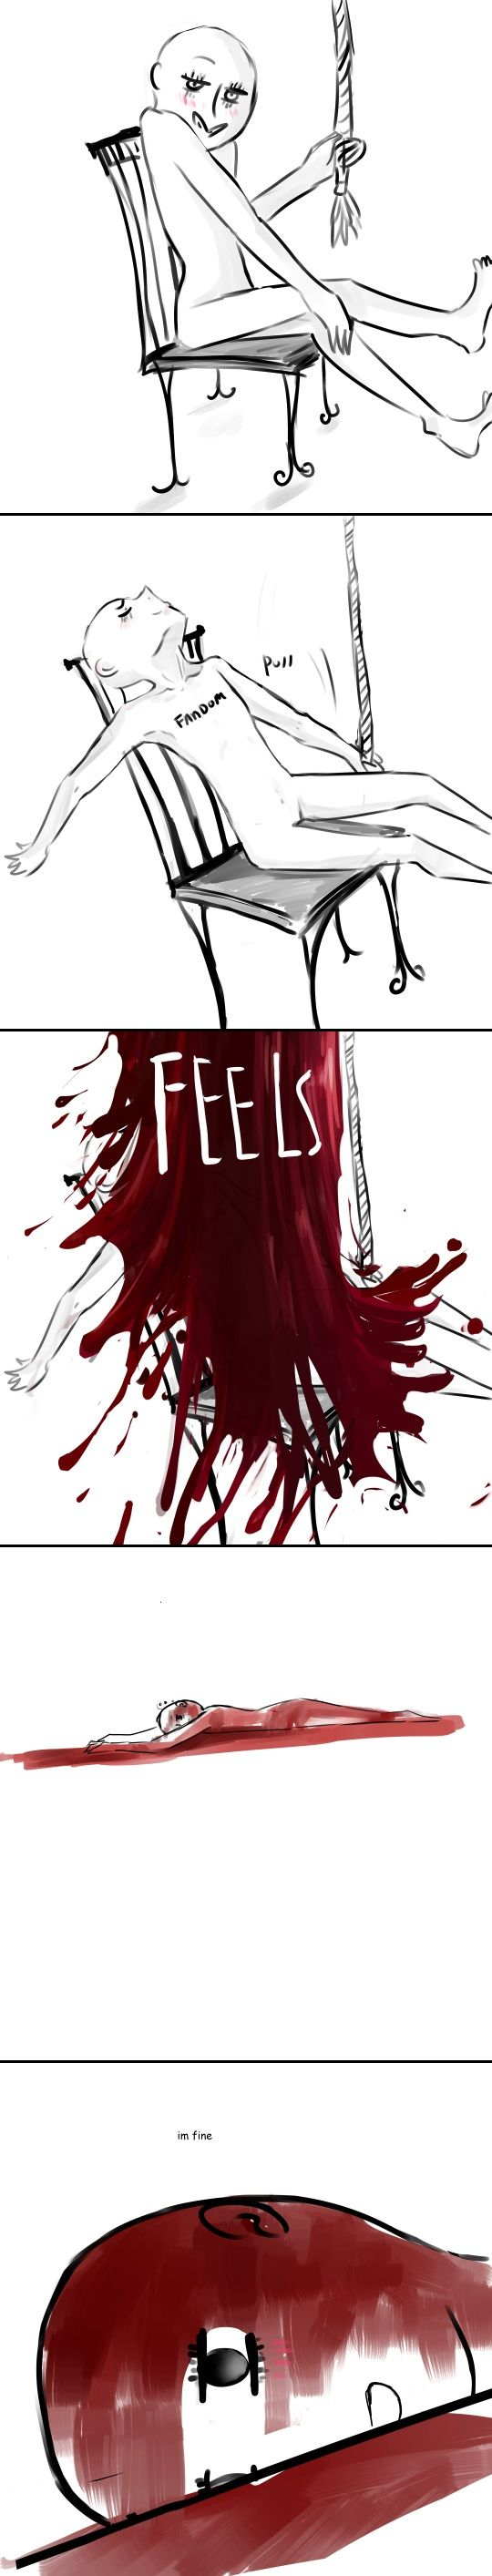 I love how the feels look like the blood of our favorite characters